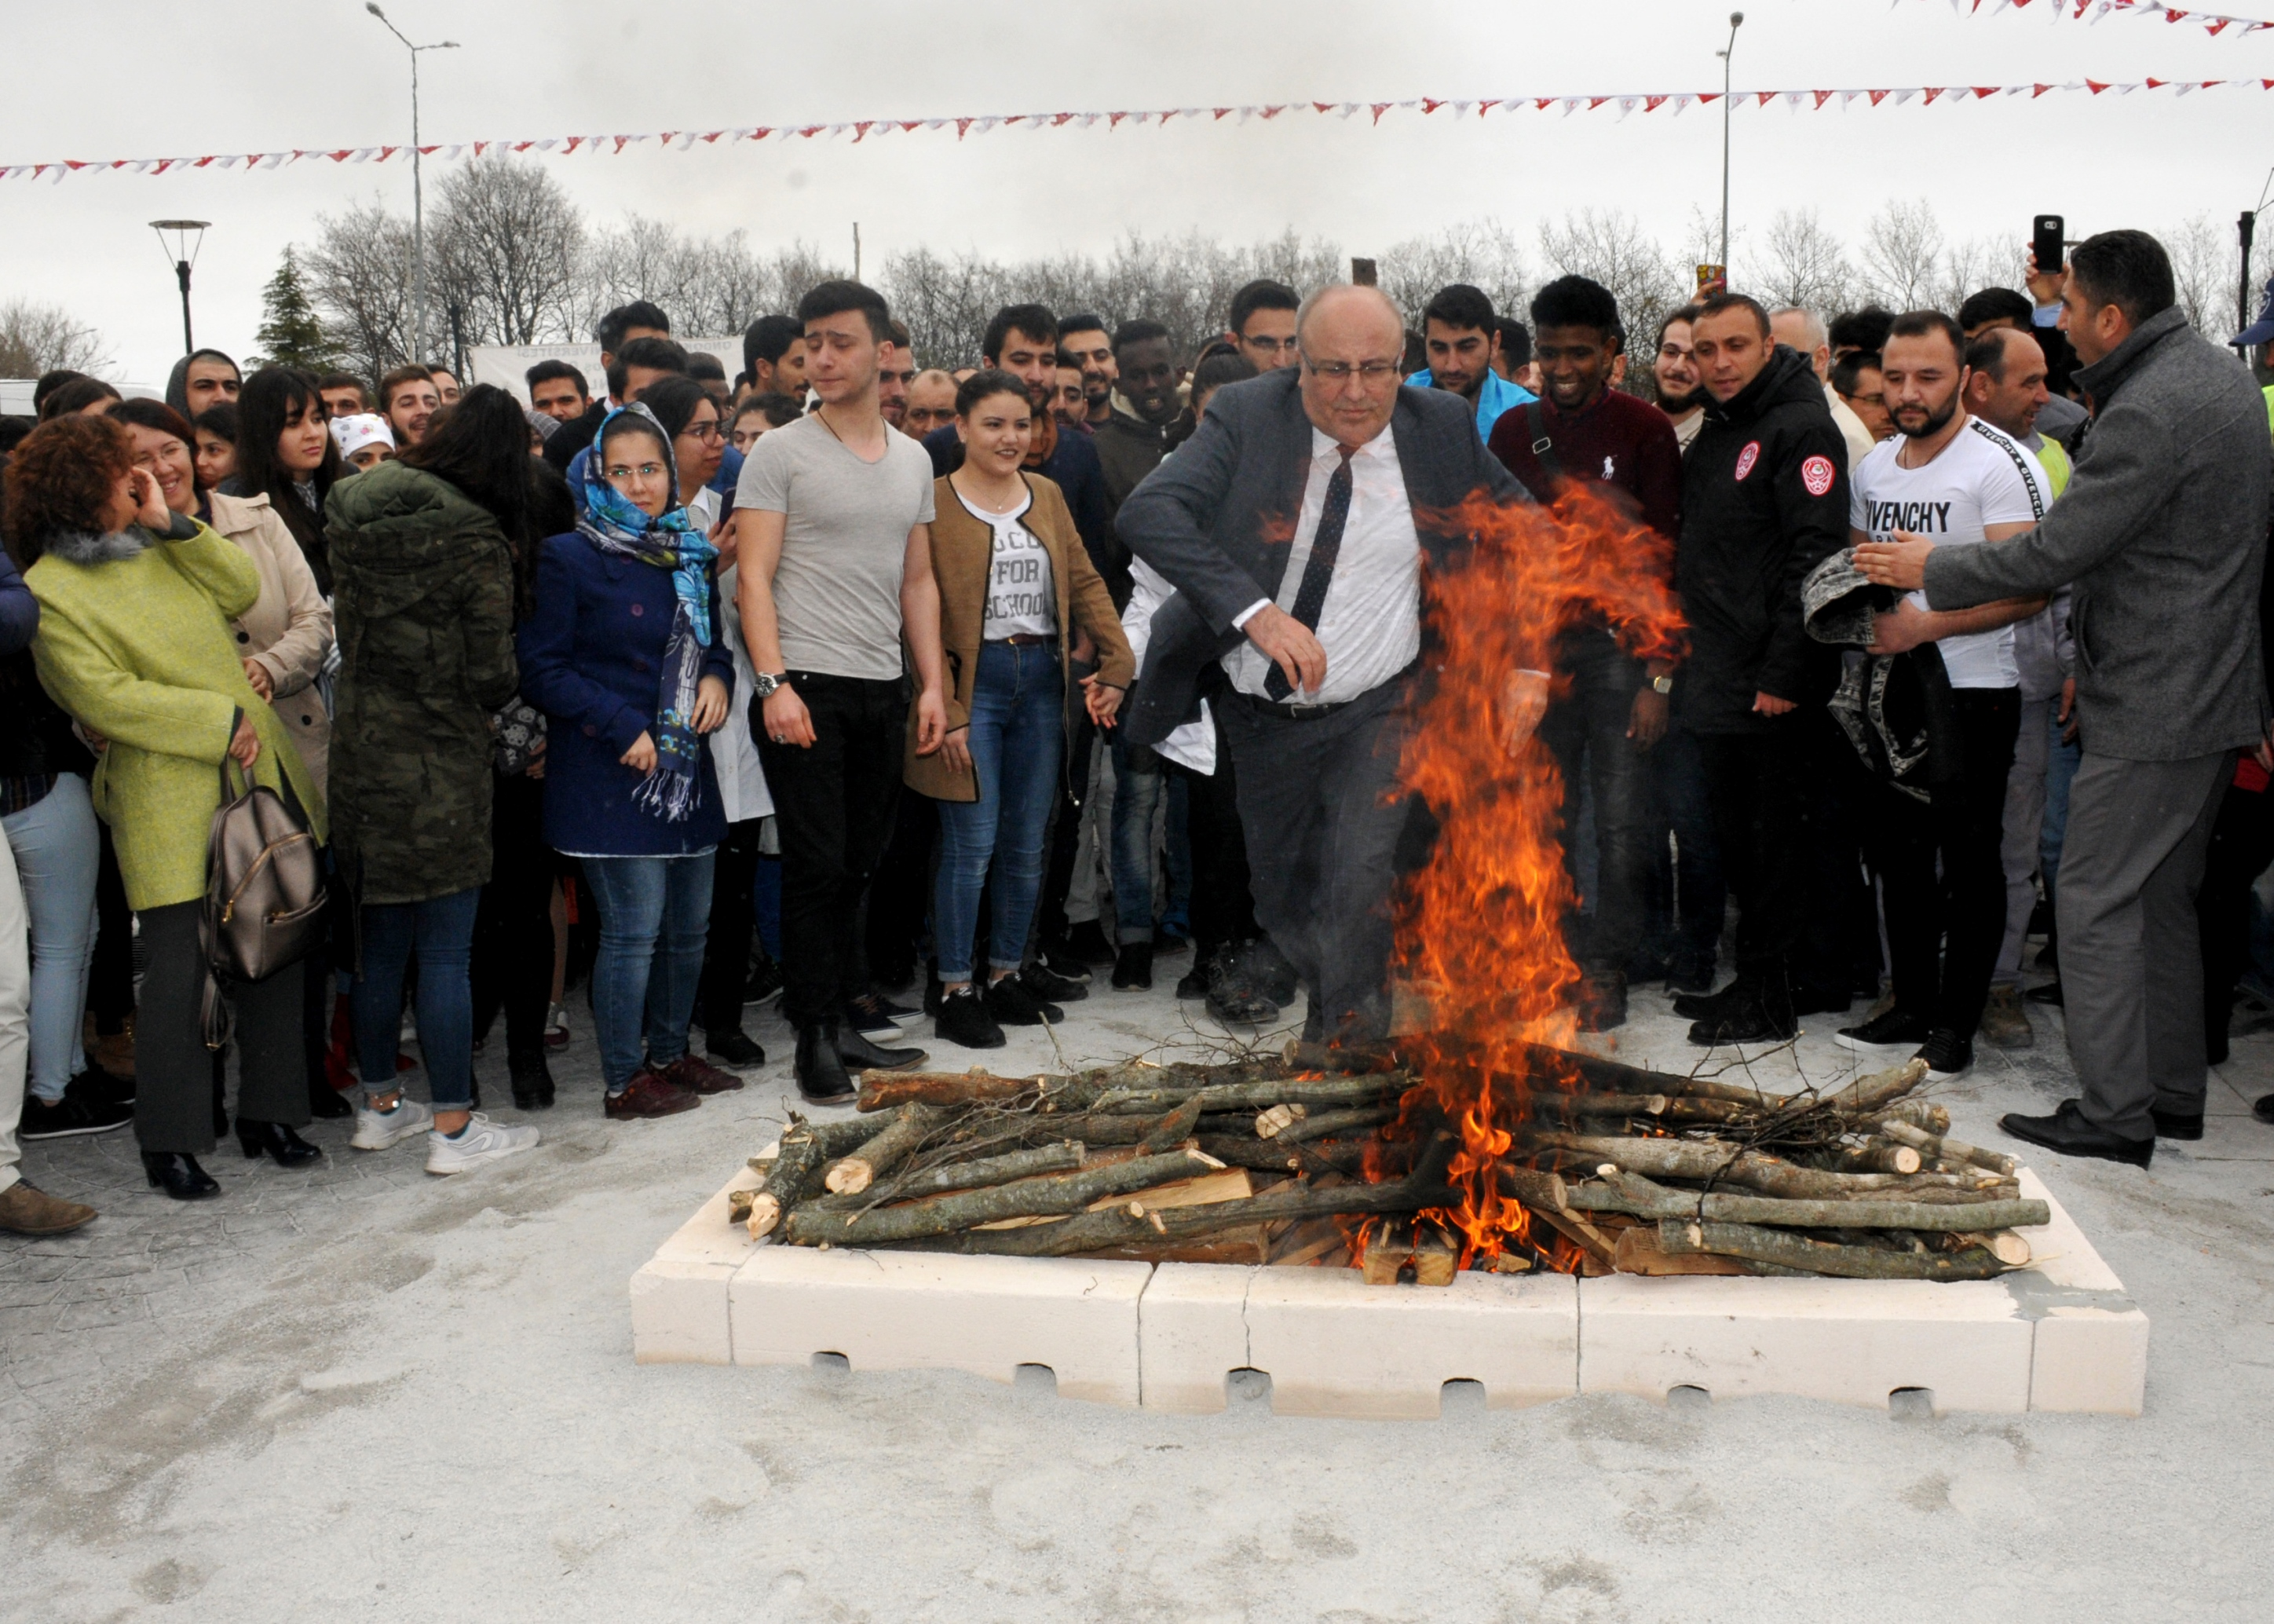 http://www.omu.edu.tr/sites/default/files/files/omu_family_enthusiastically_celebrated_newroz/dsc_0271.jpg